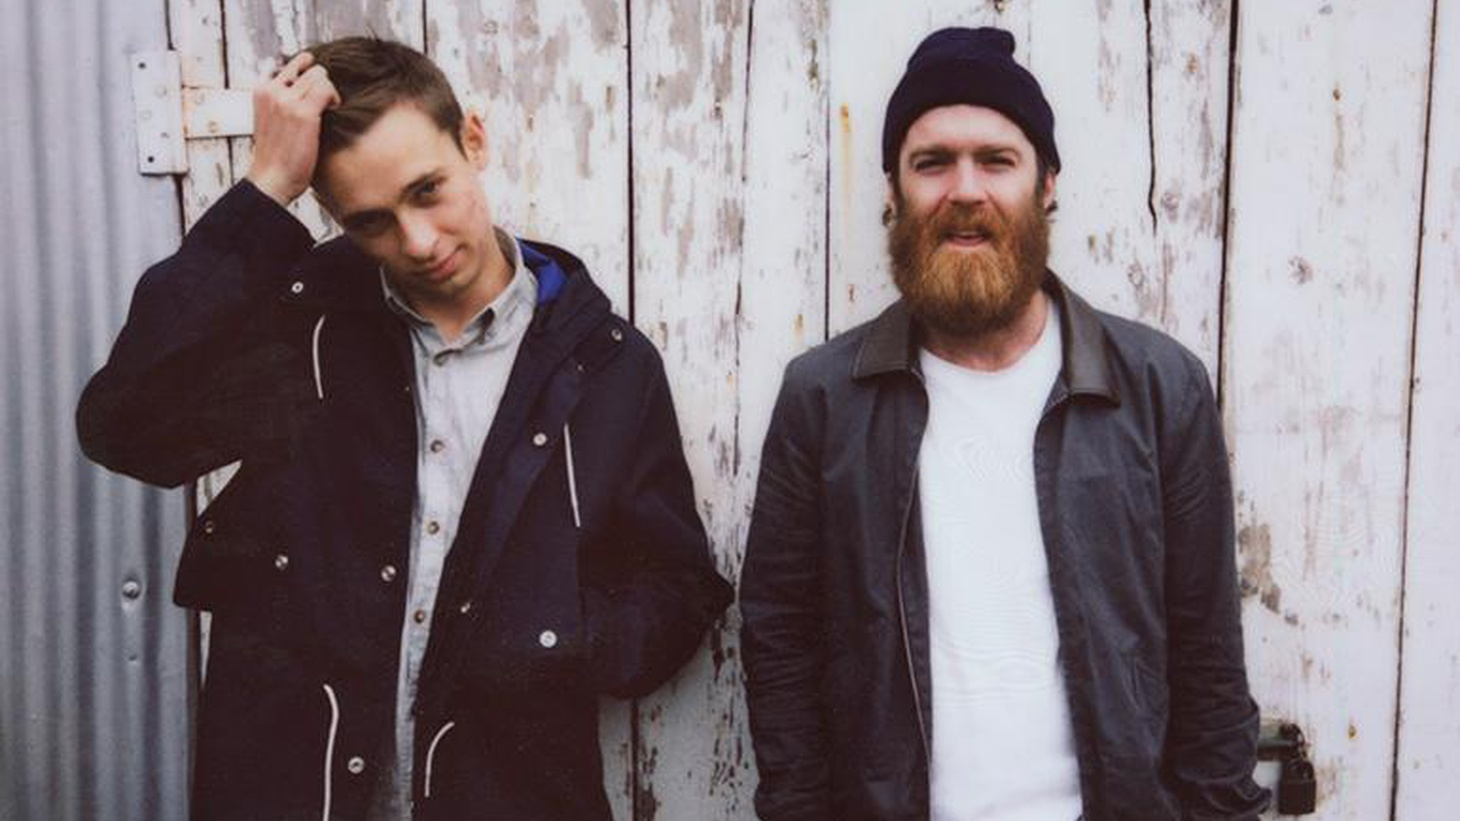 Australian electronic artists Flume and Chet Faker have teamed up for an EP, with Faker's falsetto vocals and superb production.